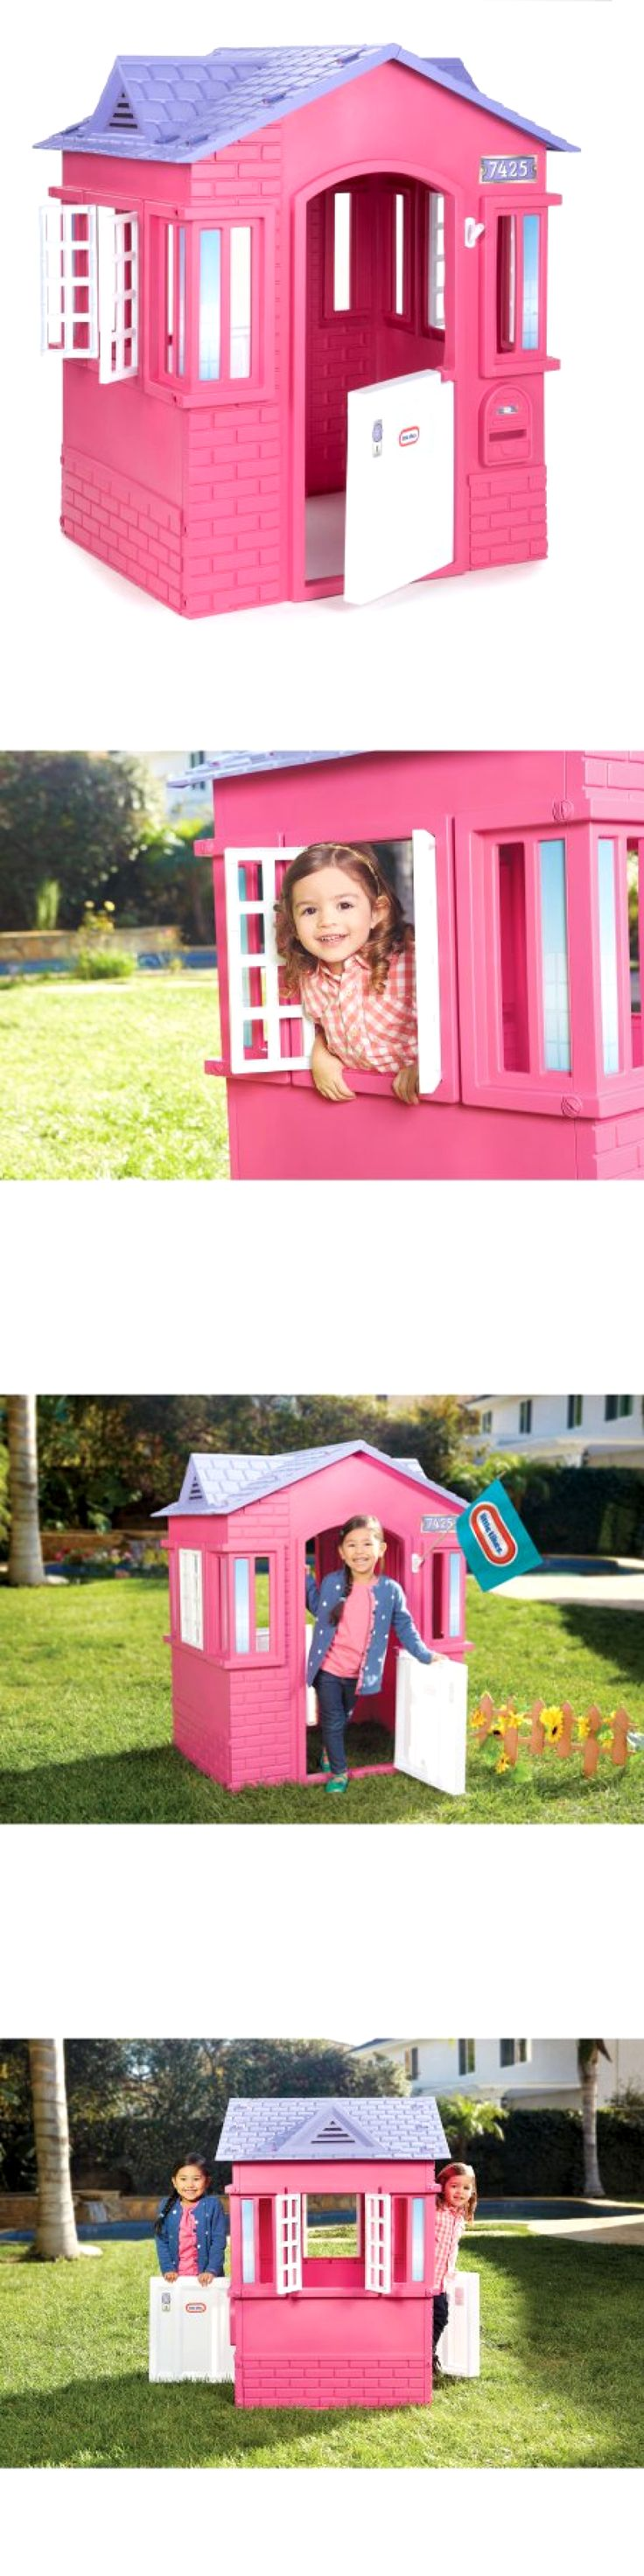 Permanent Playhouses 145995: Little Tikes Princess Cottage Playhouse, Pink -> BUY IT NOW ONLY: $114.99 on eBay!